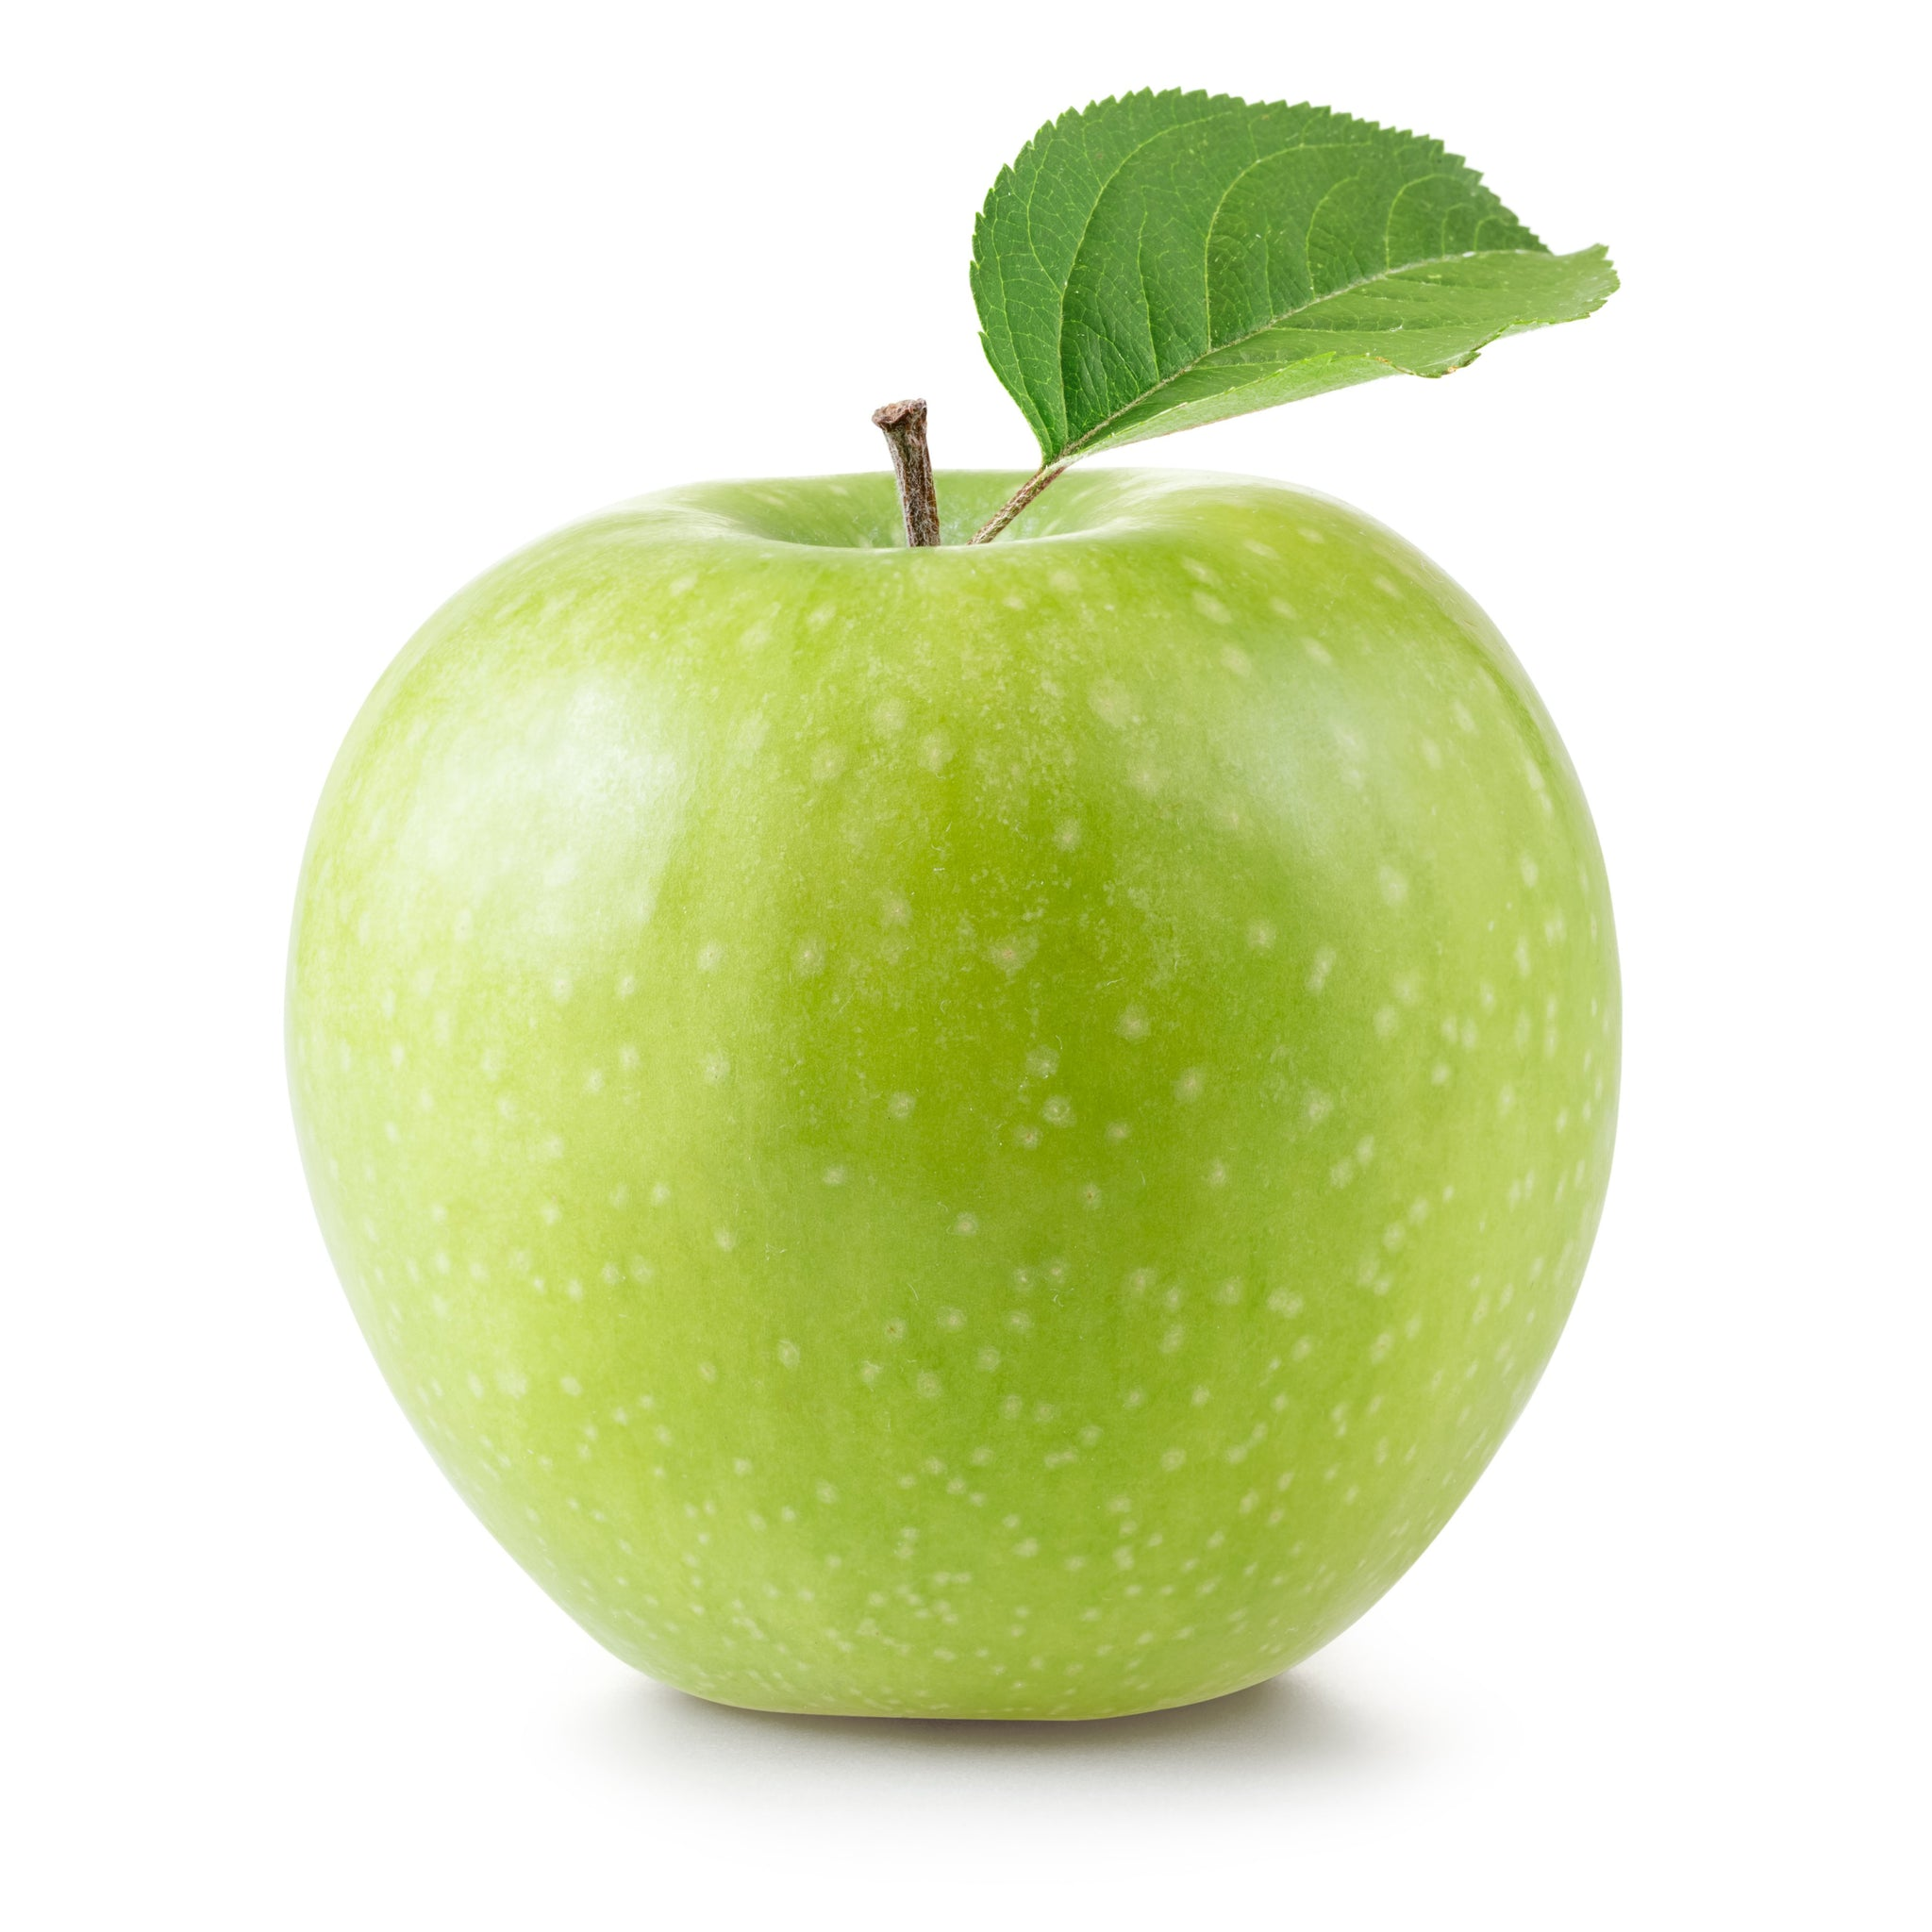 bel>Apples Granny Smith, each